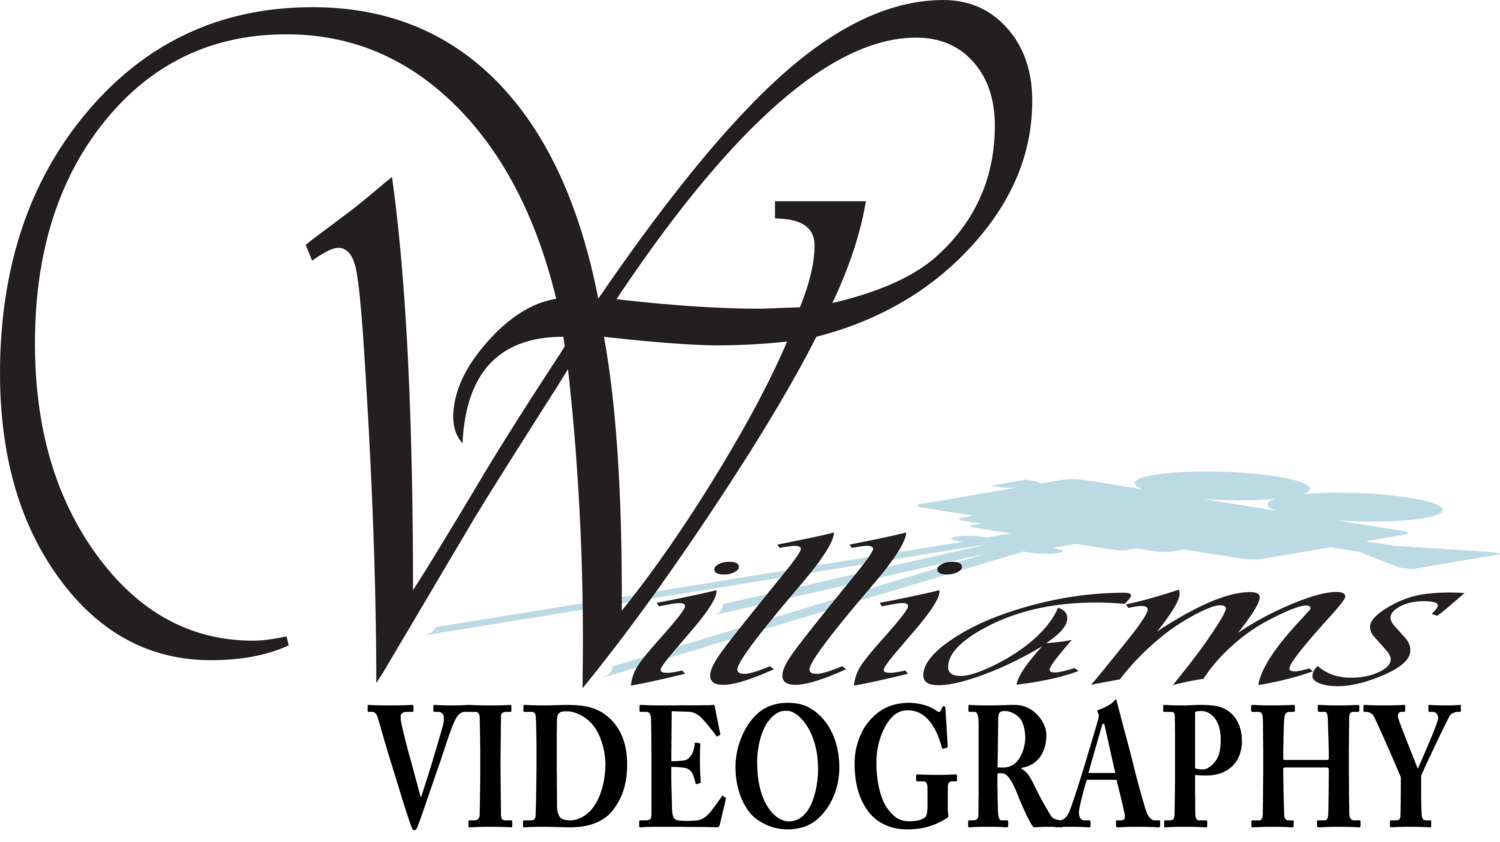 WIlliams Videography